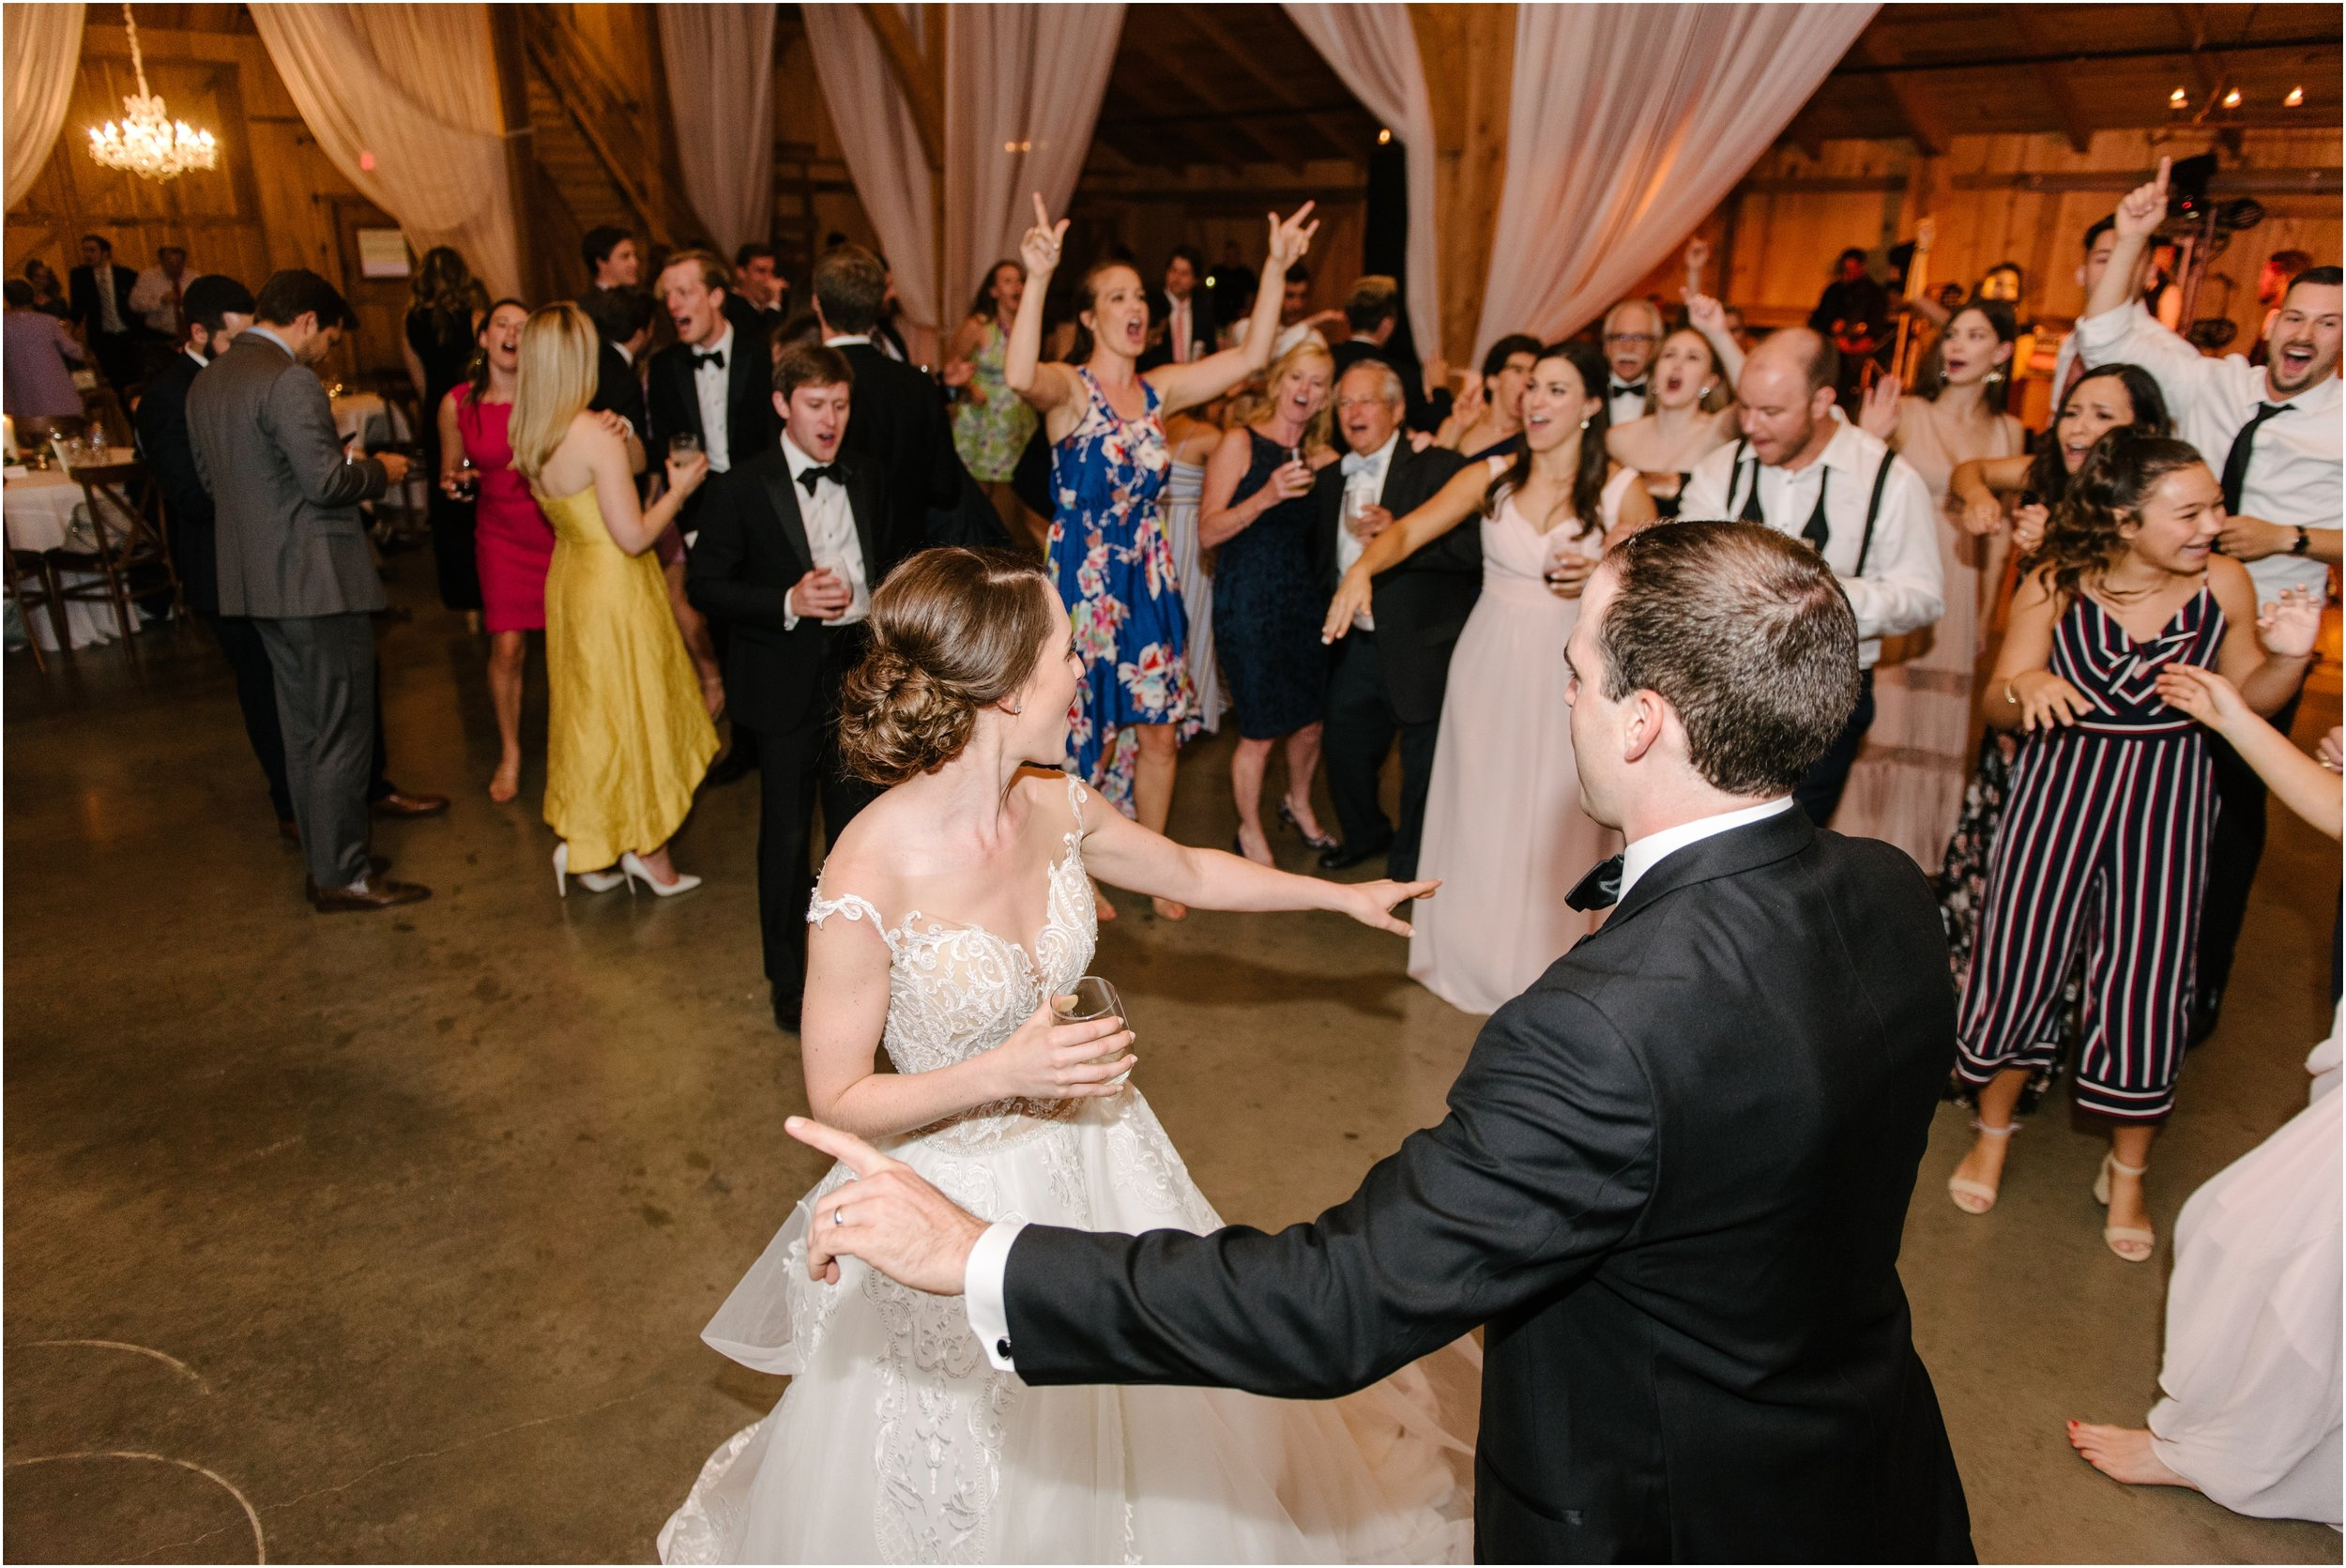 dallasweddingphotographer_fortworthweddingphotographer_texasweddingphotographer_mattandjulieweddings_whiterocklakewedding_KayleighClay_0043.jpg